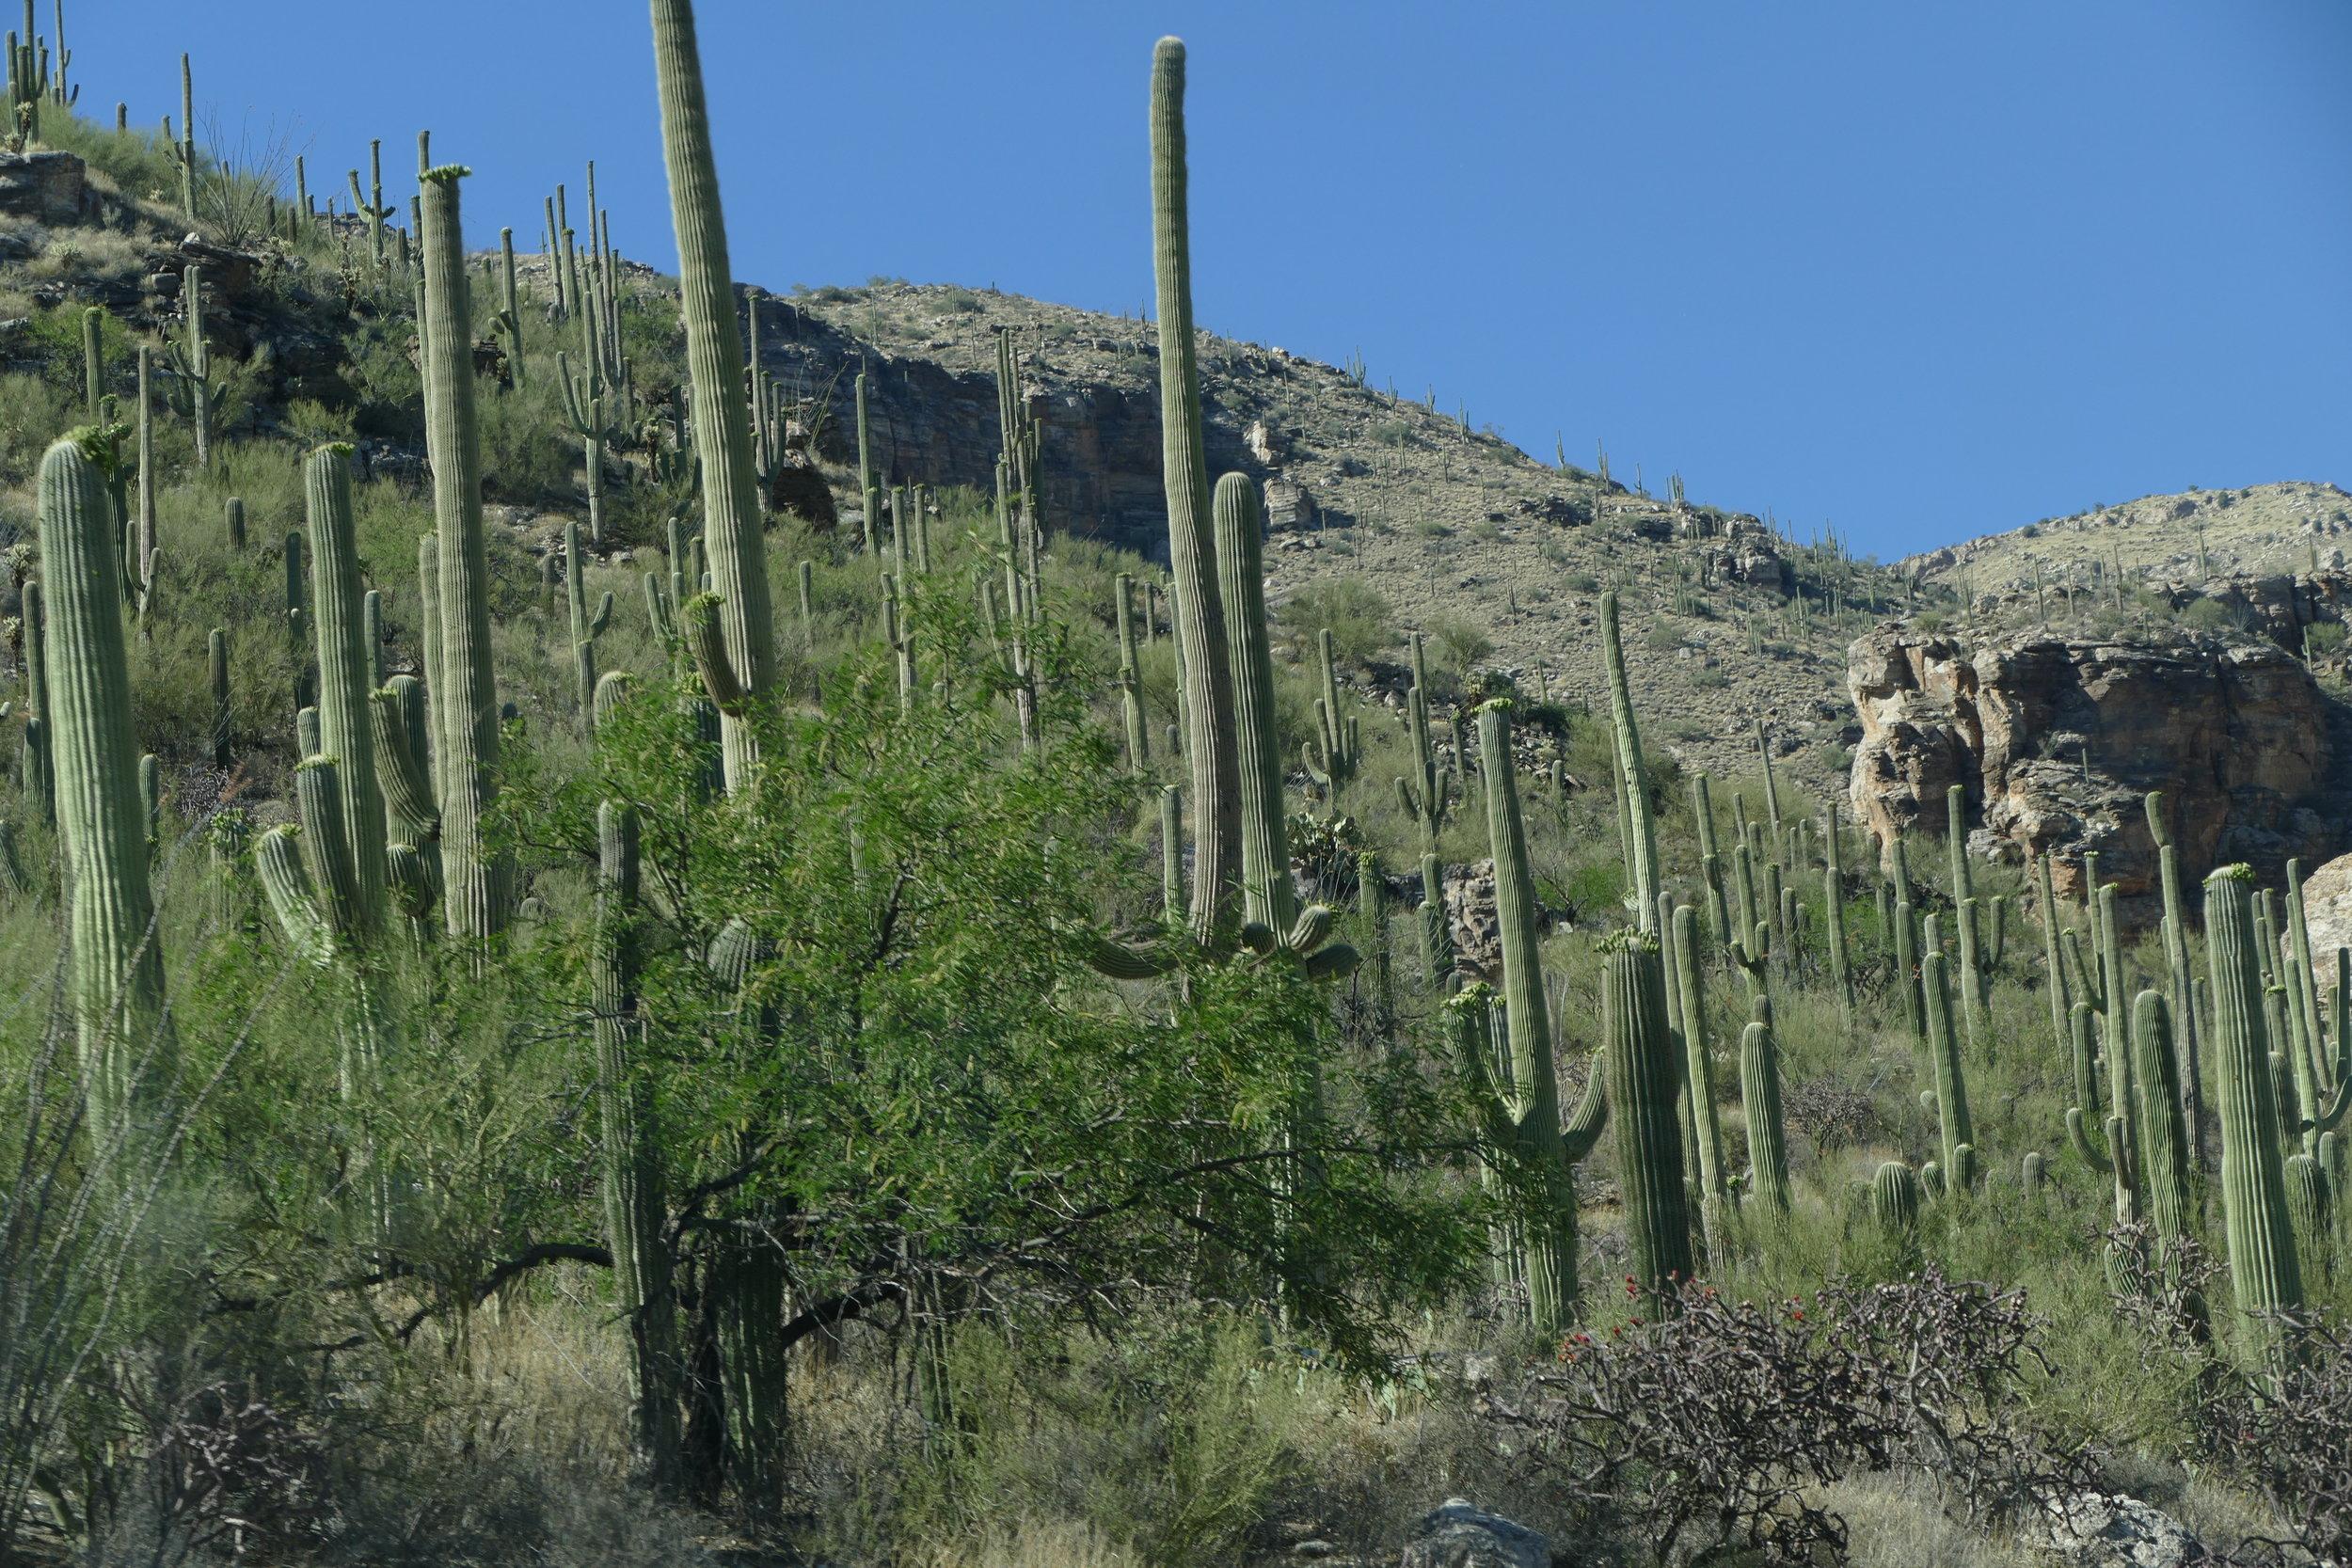 A Saguaro cactus forest on the steep, winding drive up the Mount Lemmon Scenic Highway.